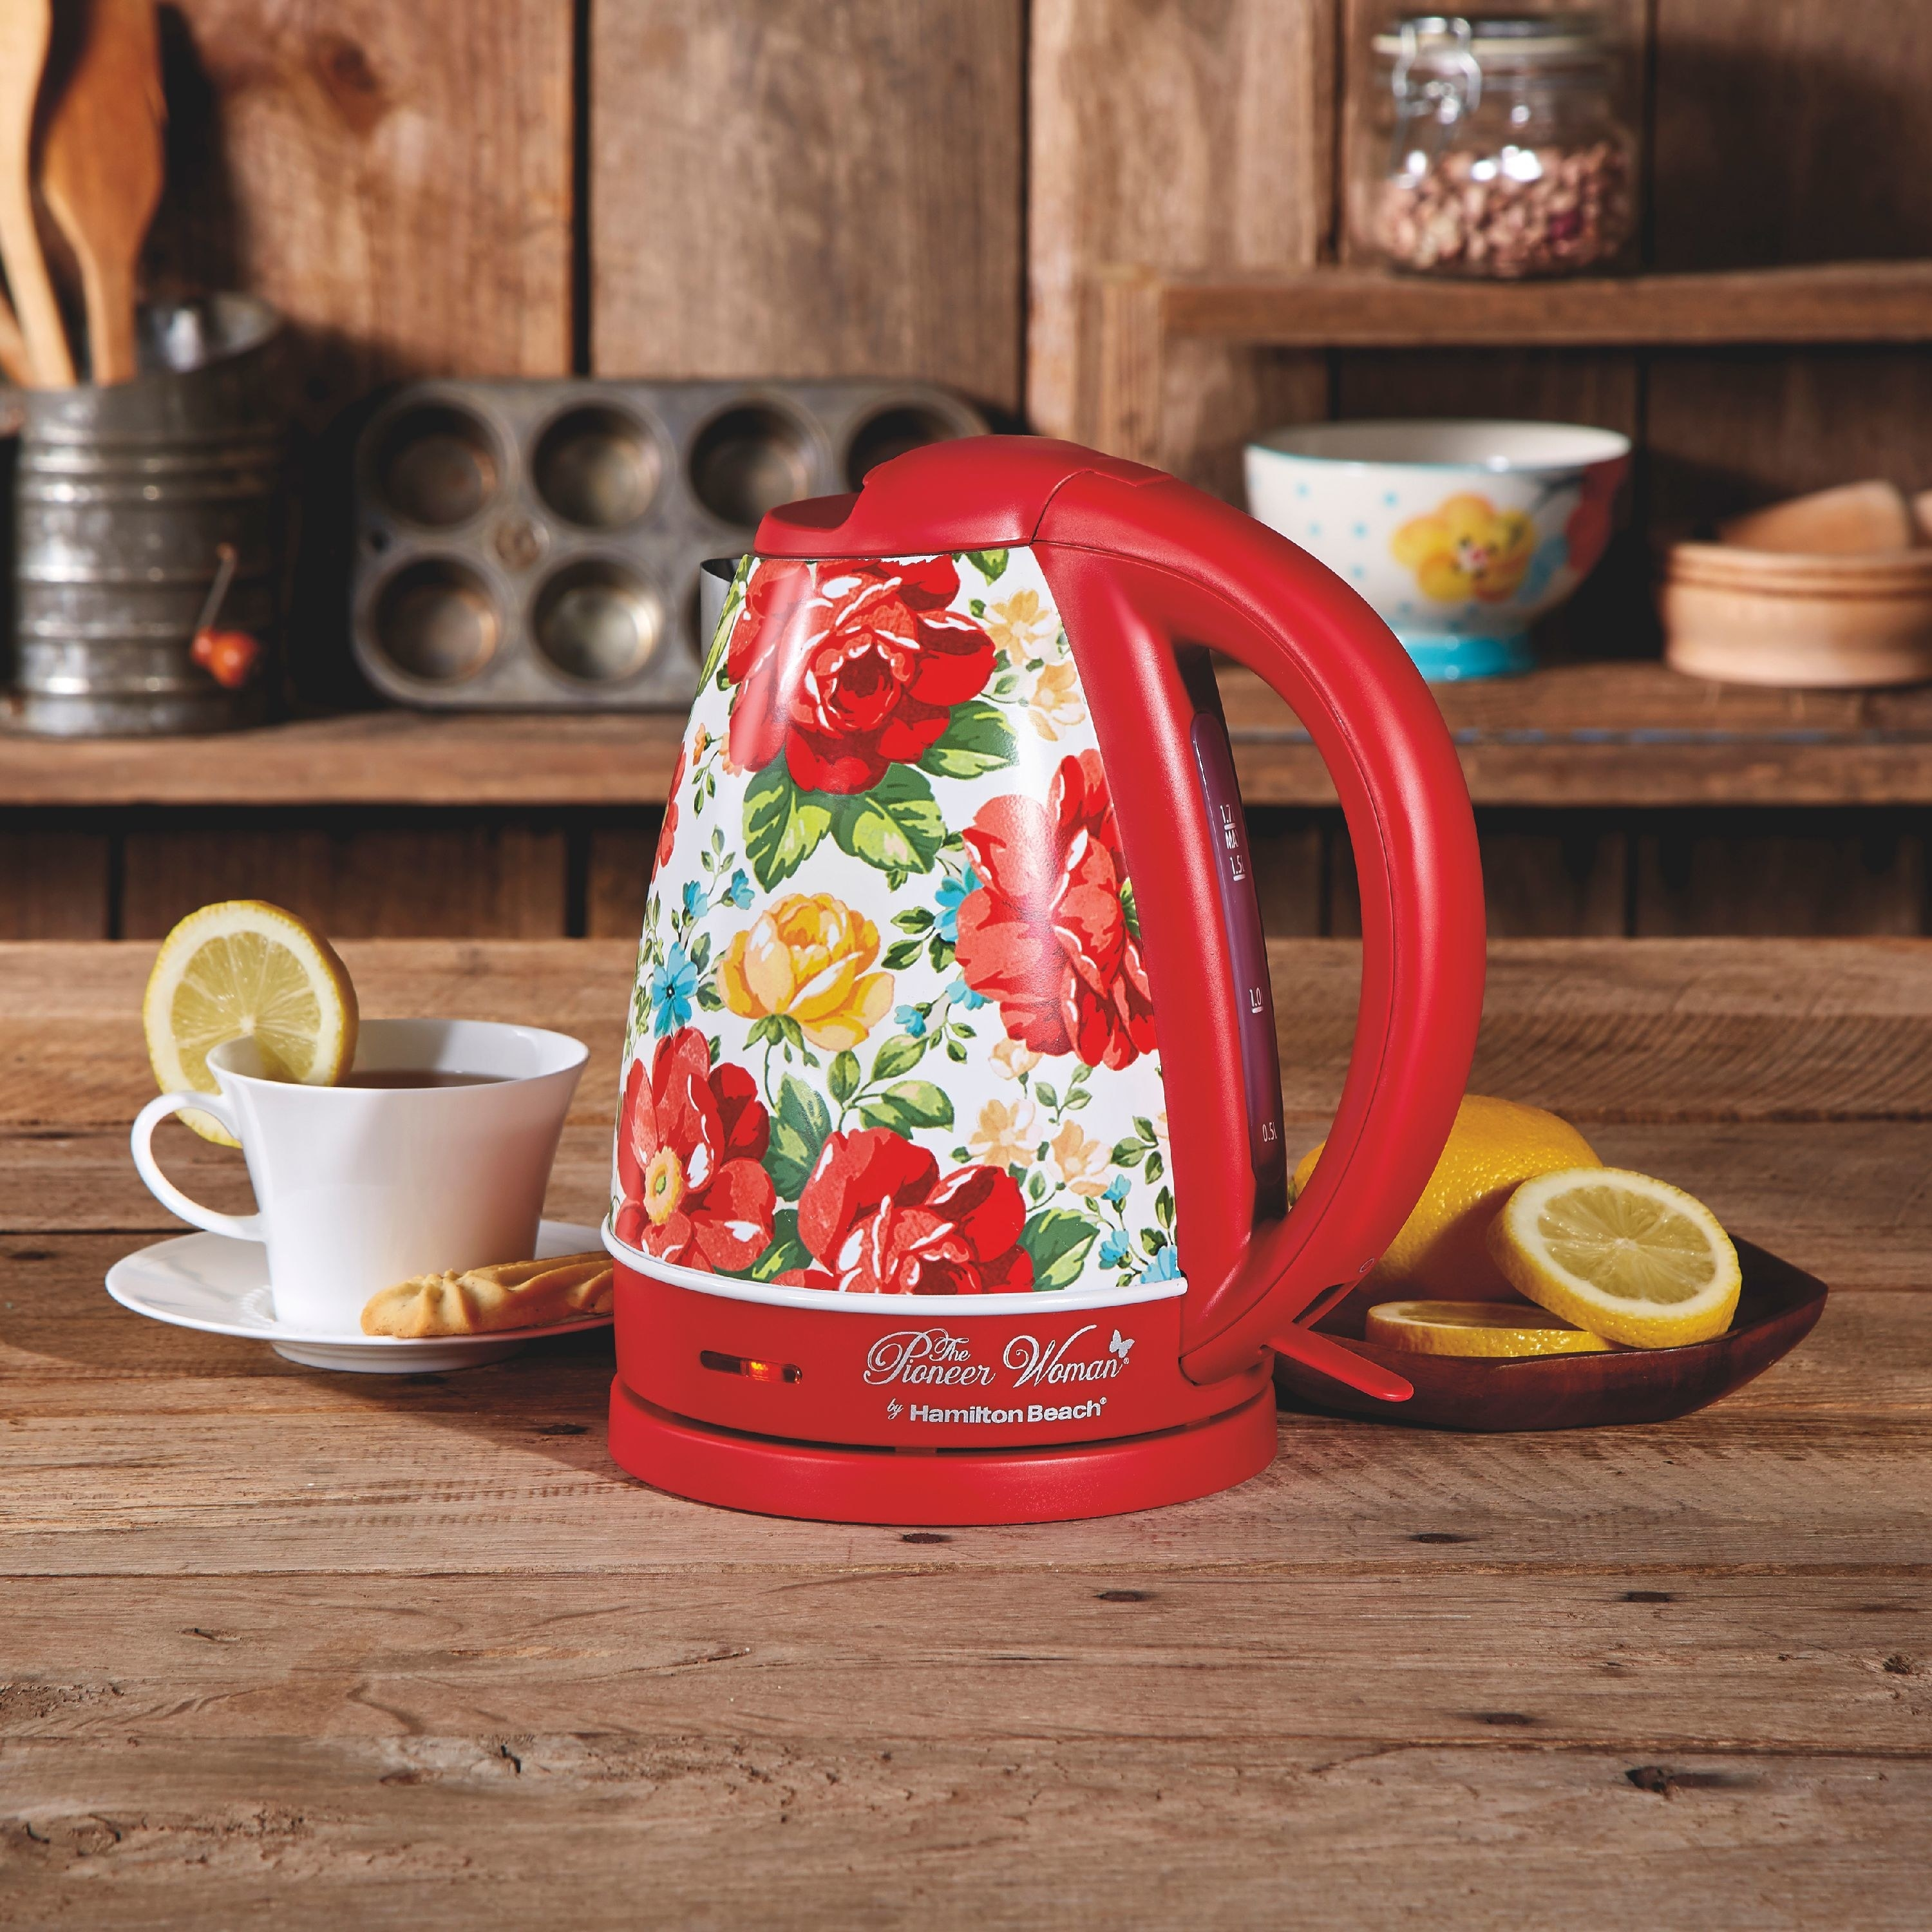 A red floral Pioneer Woman kettle